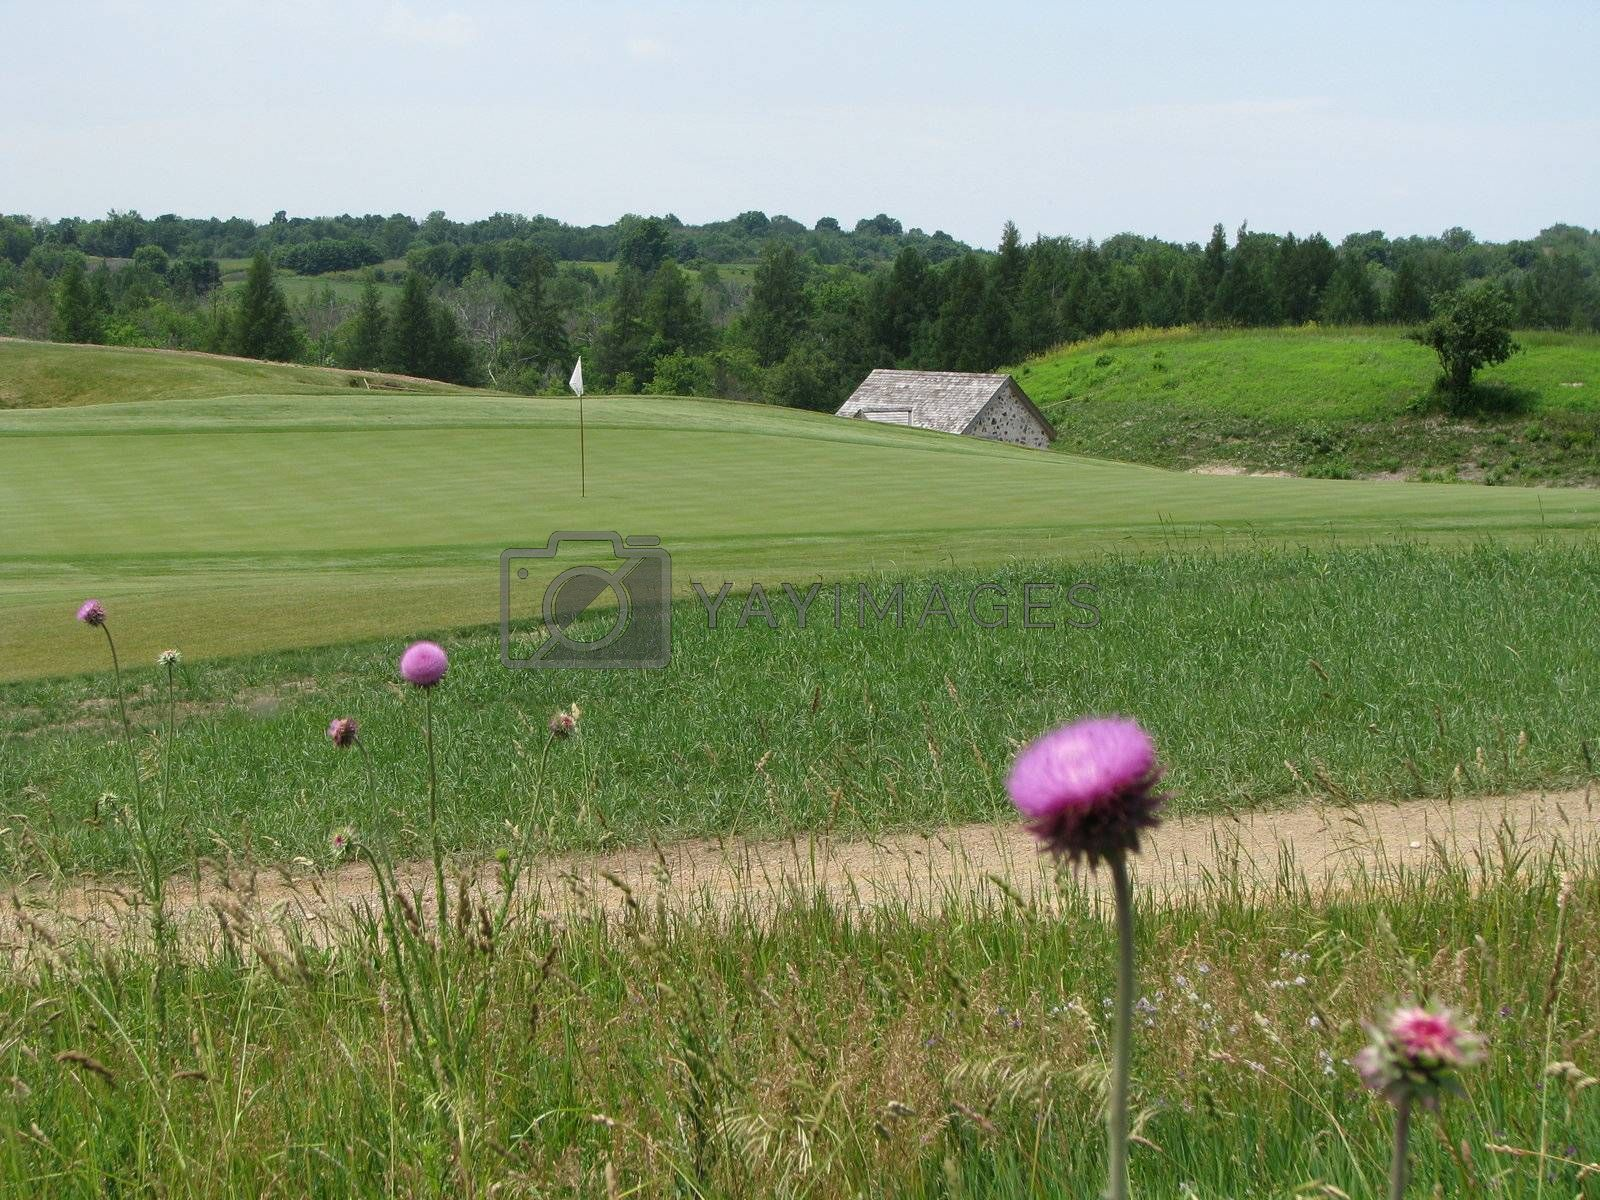 Thistle on golf course